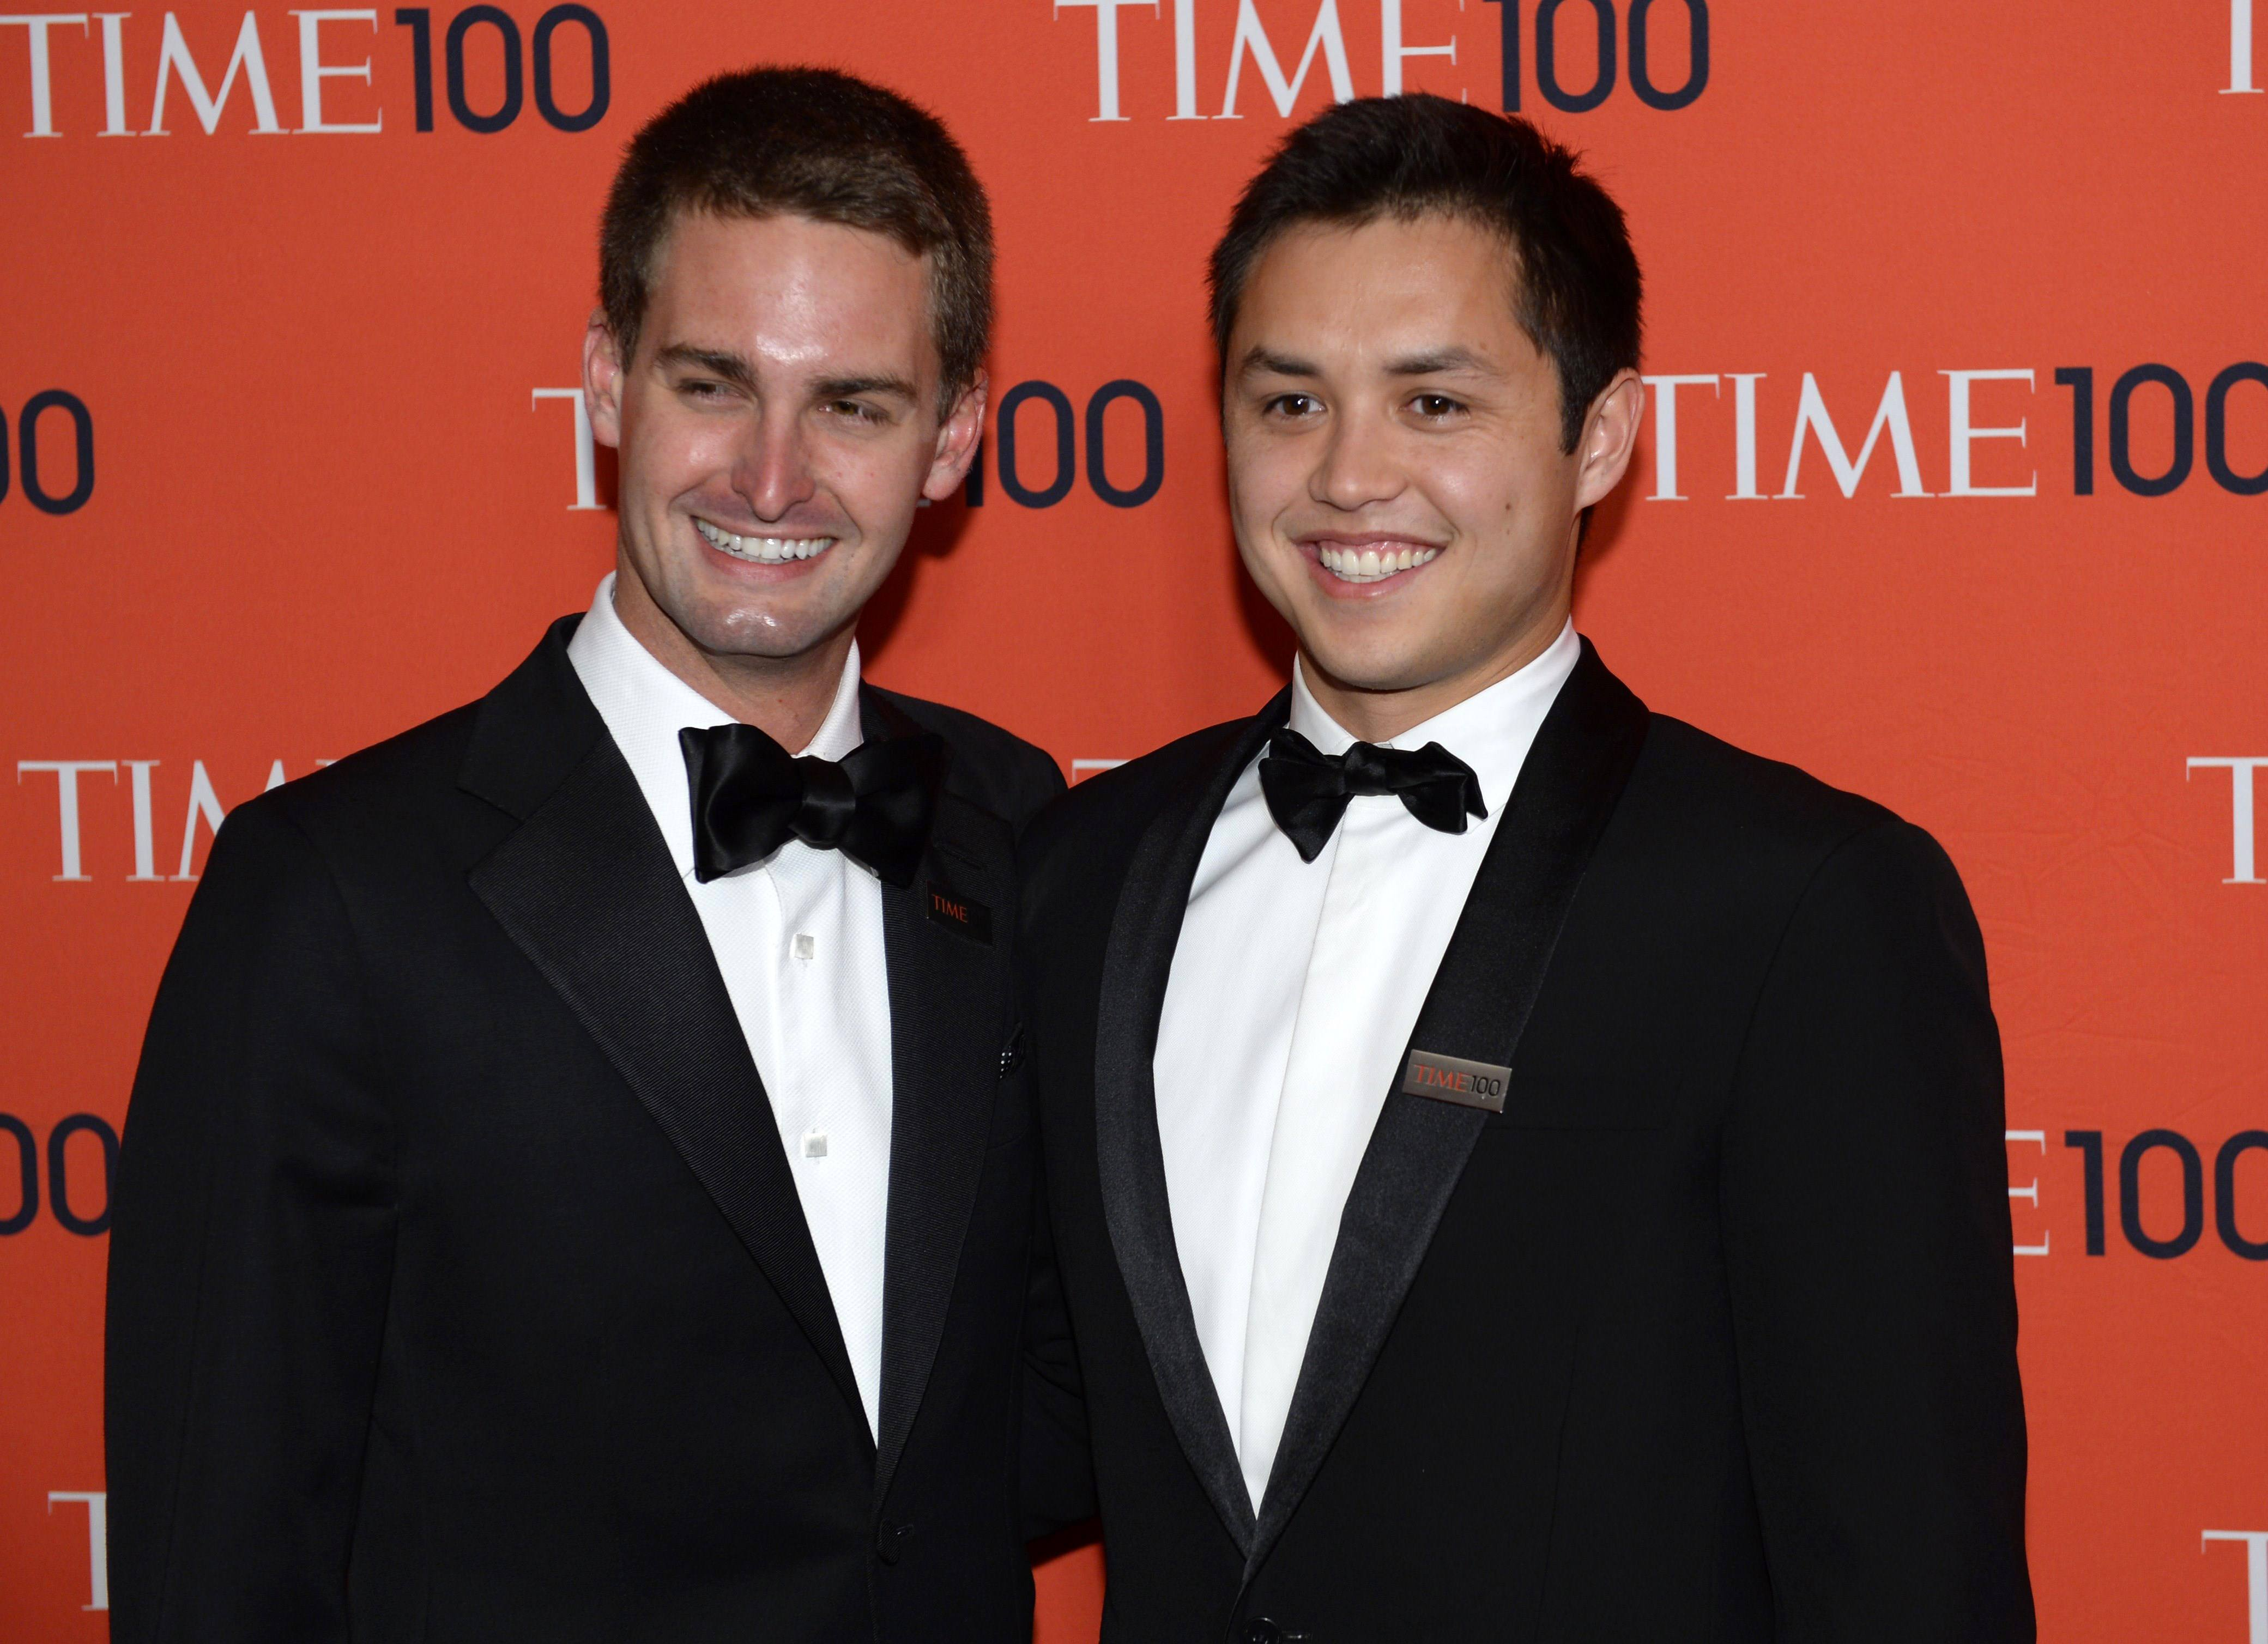 Evan Spiegel and Bobby Murphy